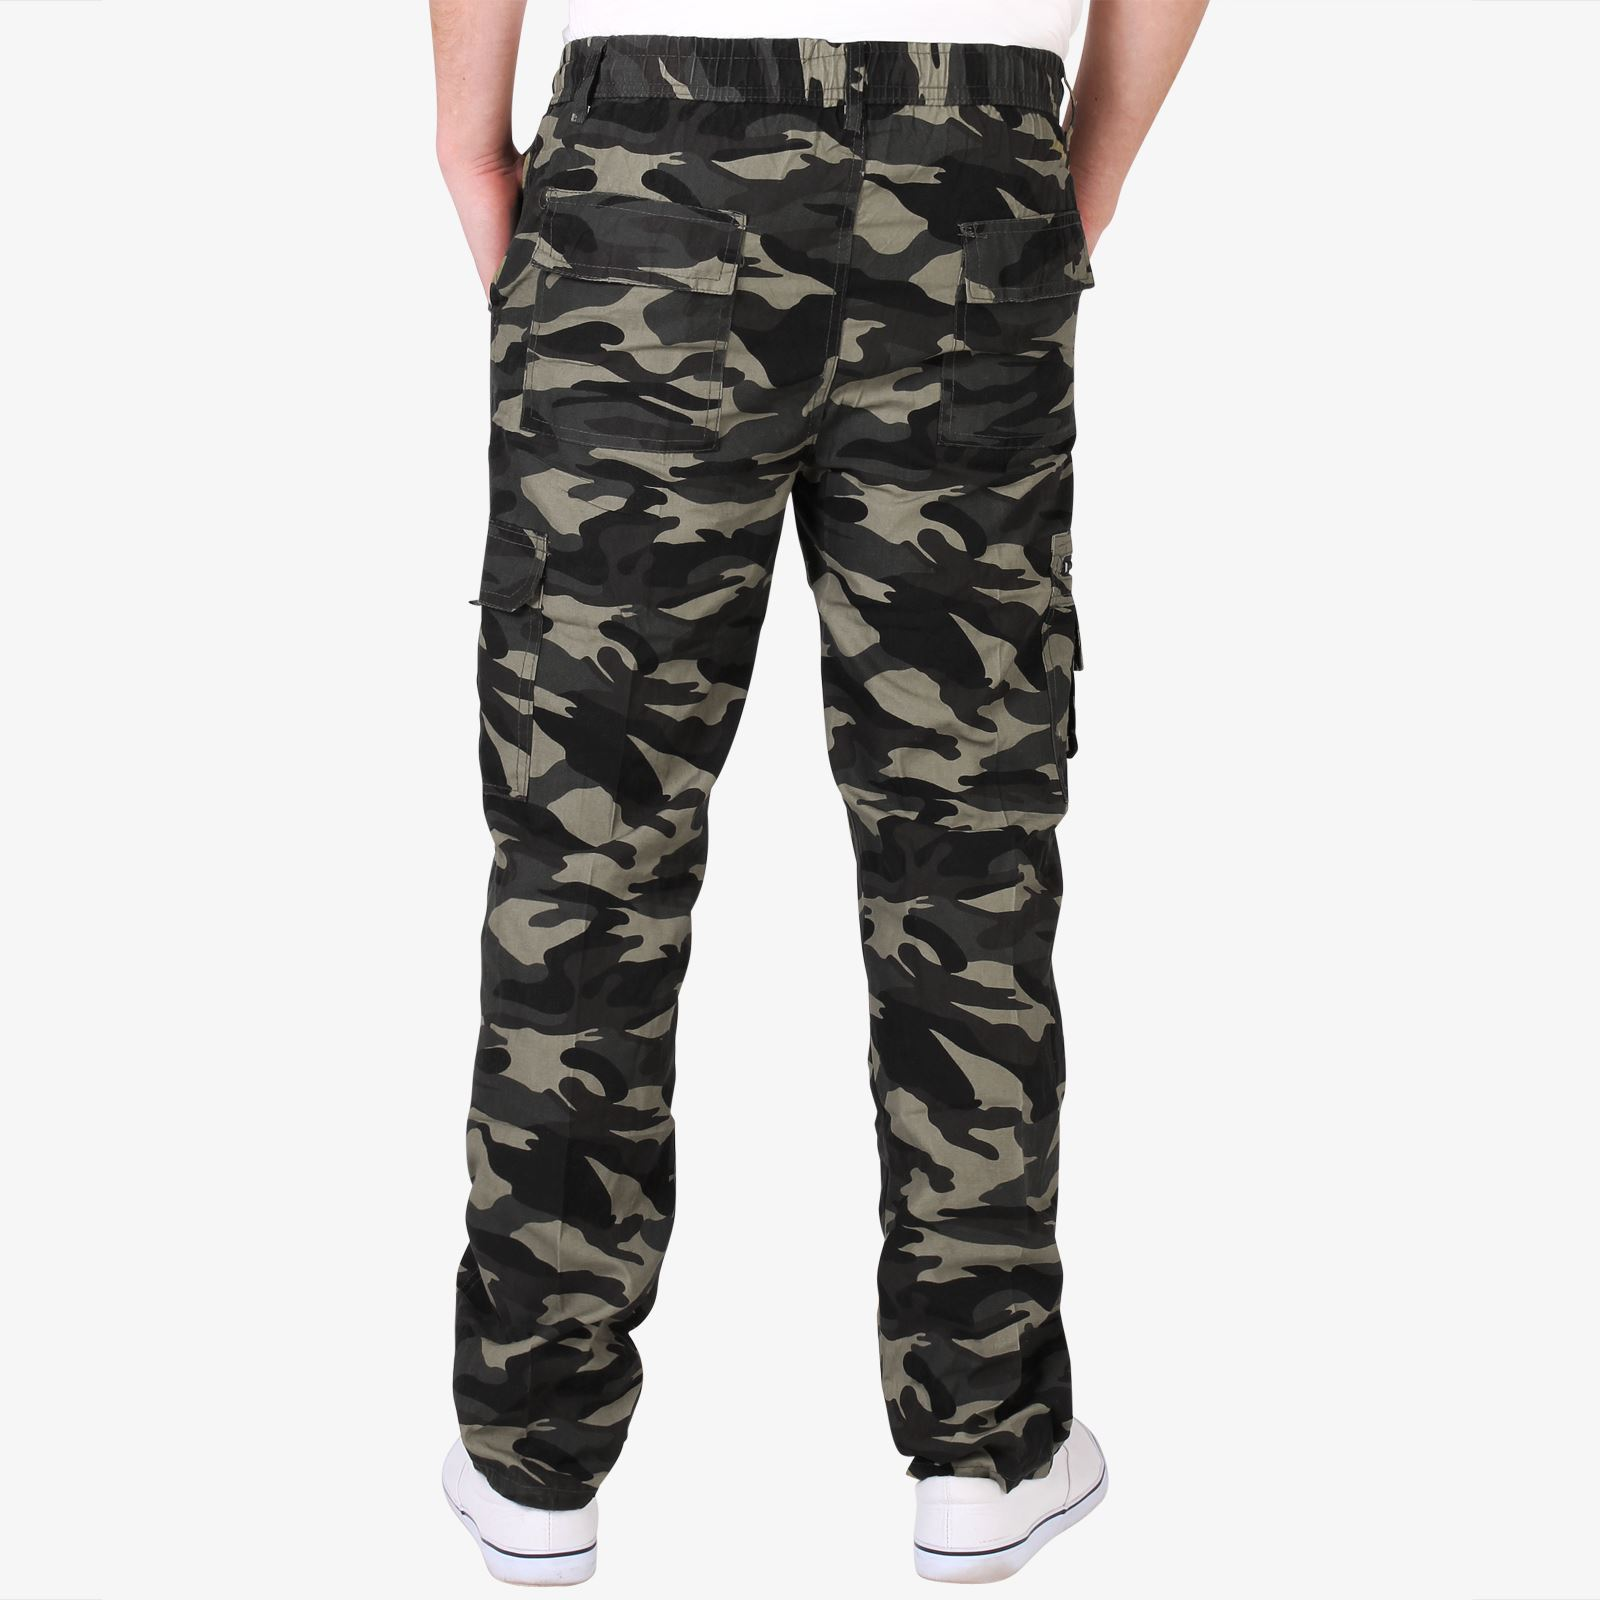 Mens-Combat-Military-Army-Camouflage-Cargo-Camo-Trousers-Pants-Casual-Work-Sizes thumbnail 4